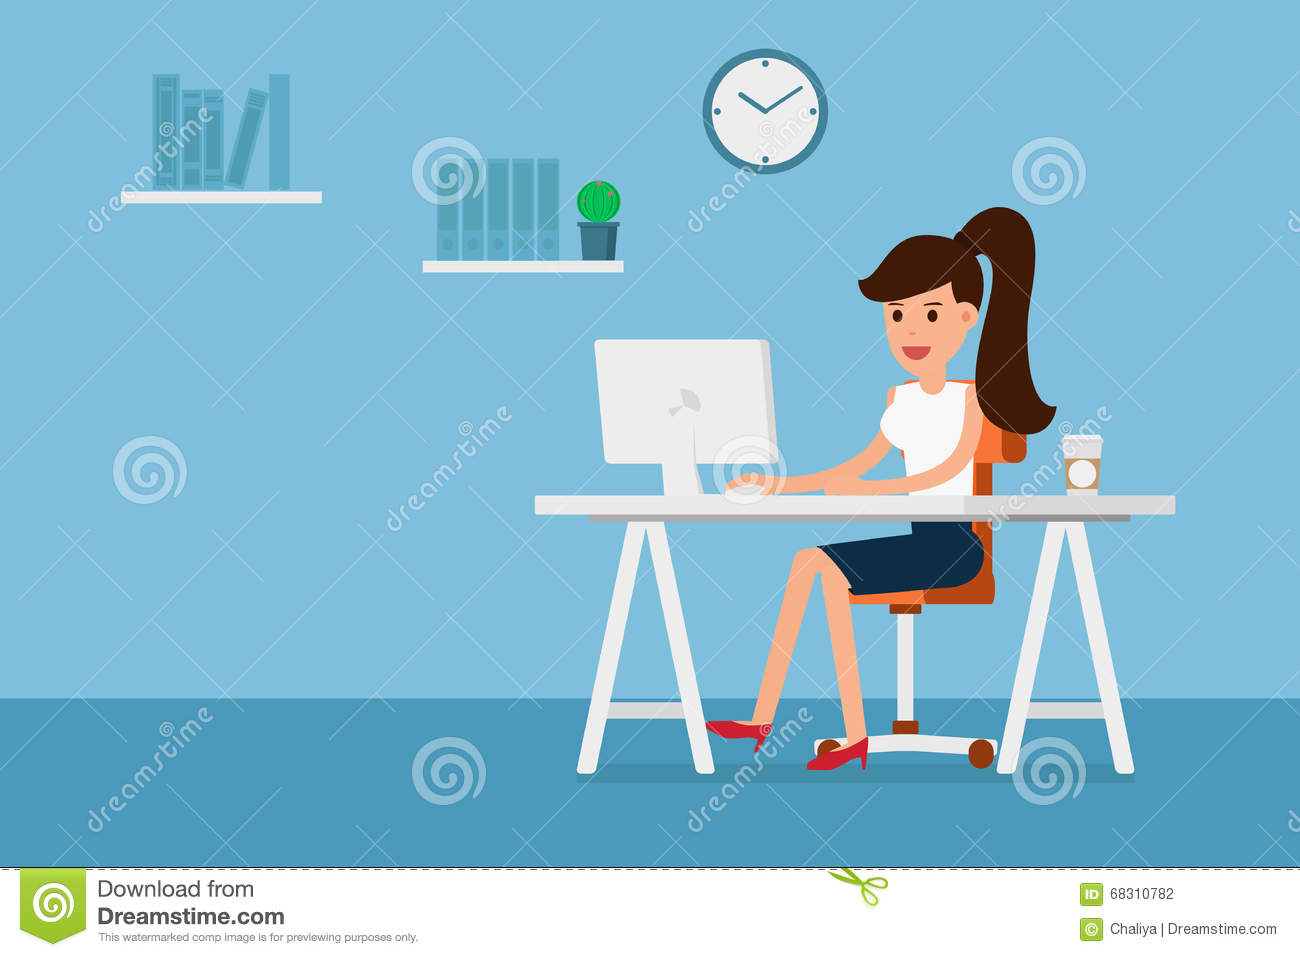 Business woman working on computer and coffee in paper cup, flat design style.